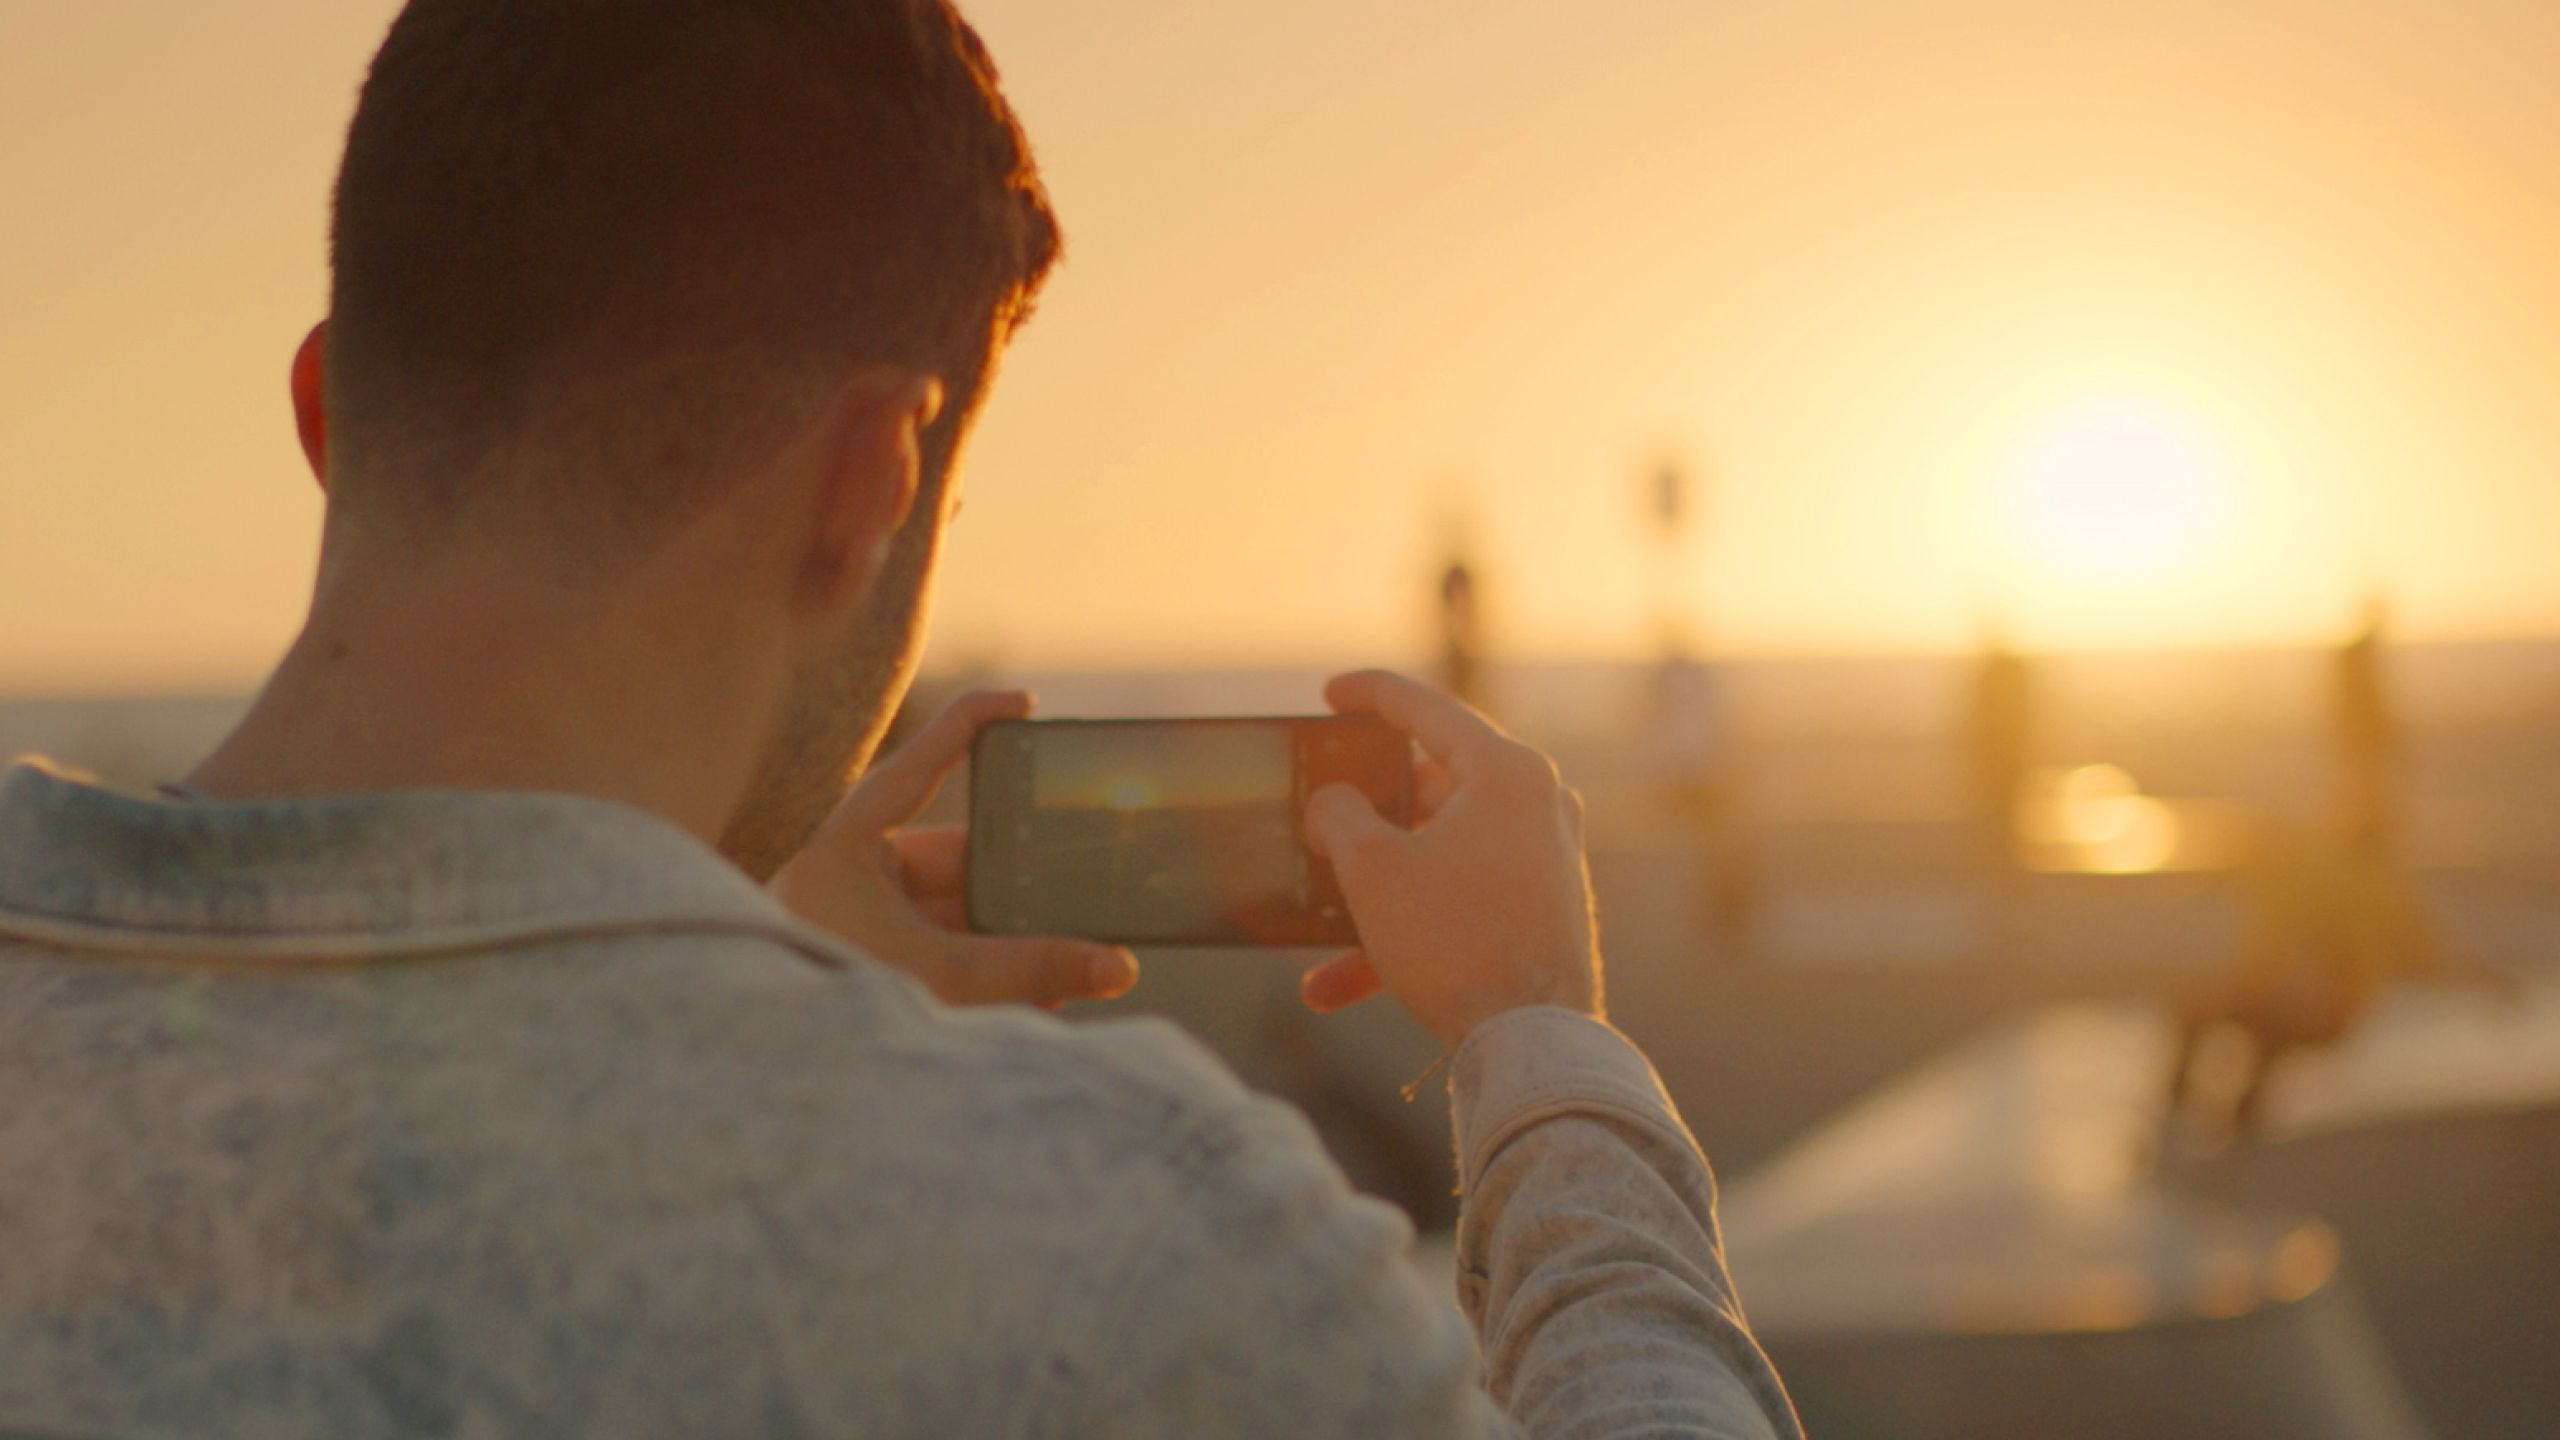 A person taking a photo of a sunset using their mobile phone